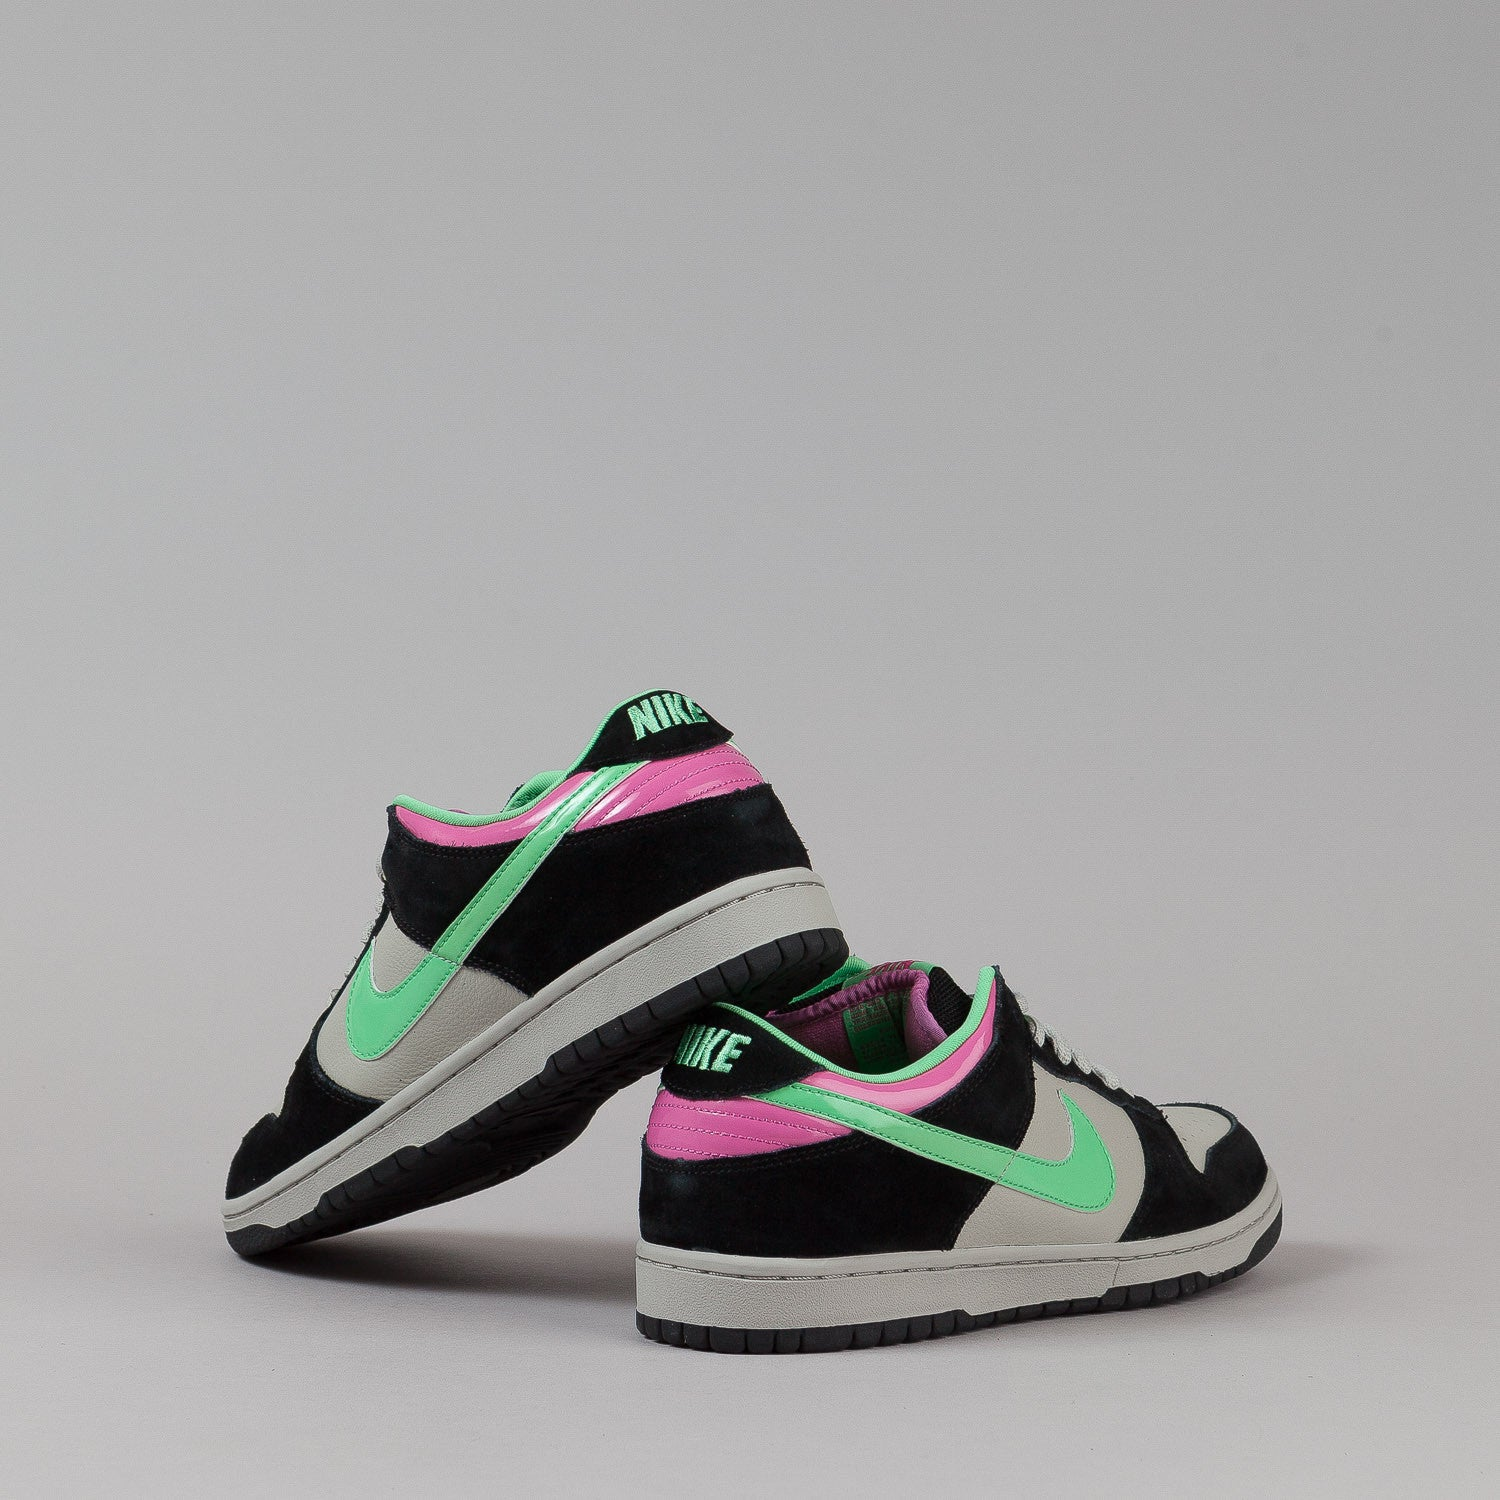 Nike SB Dunk Low Pro Shoes - Magnet / Light Poison Green